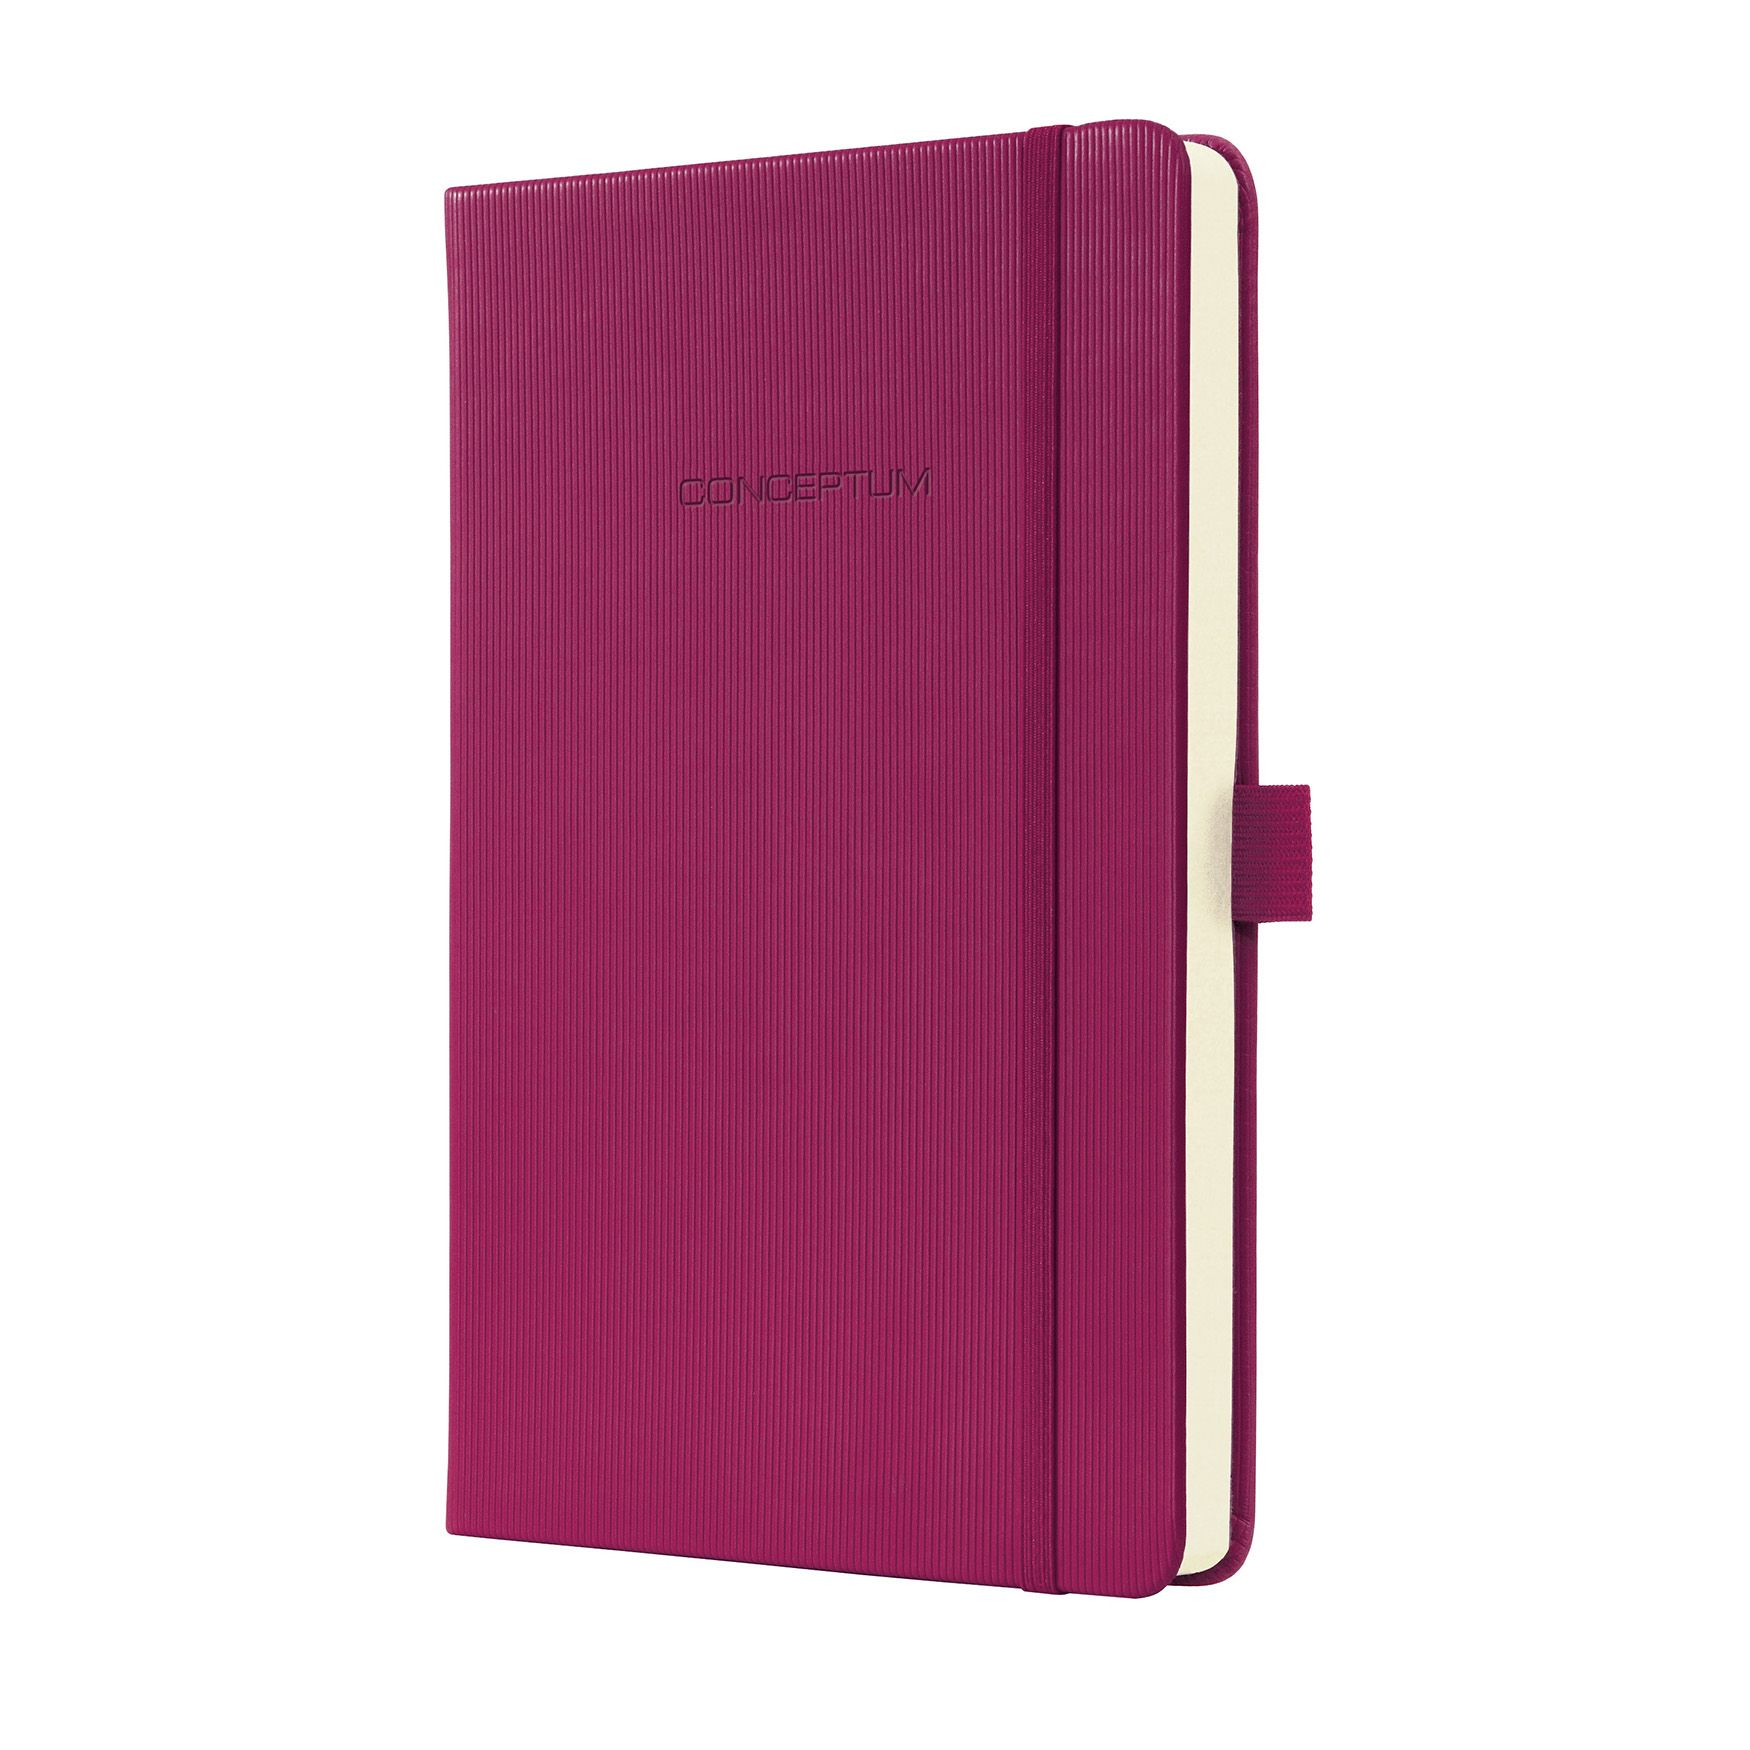 Sigel Hardcover Notebook With Elastic Closure Lined Paper A5